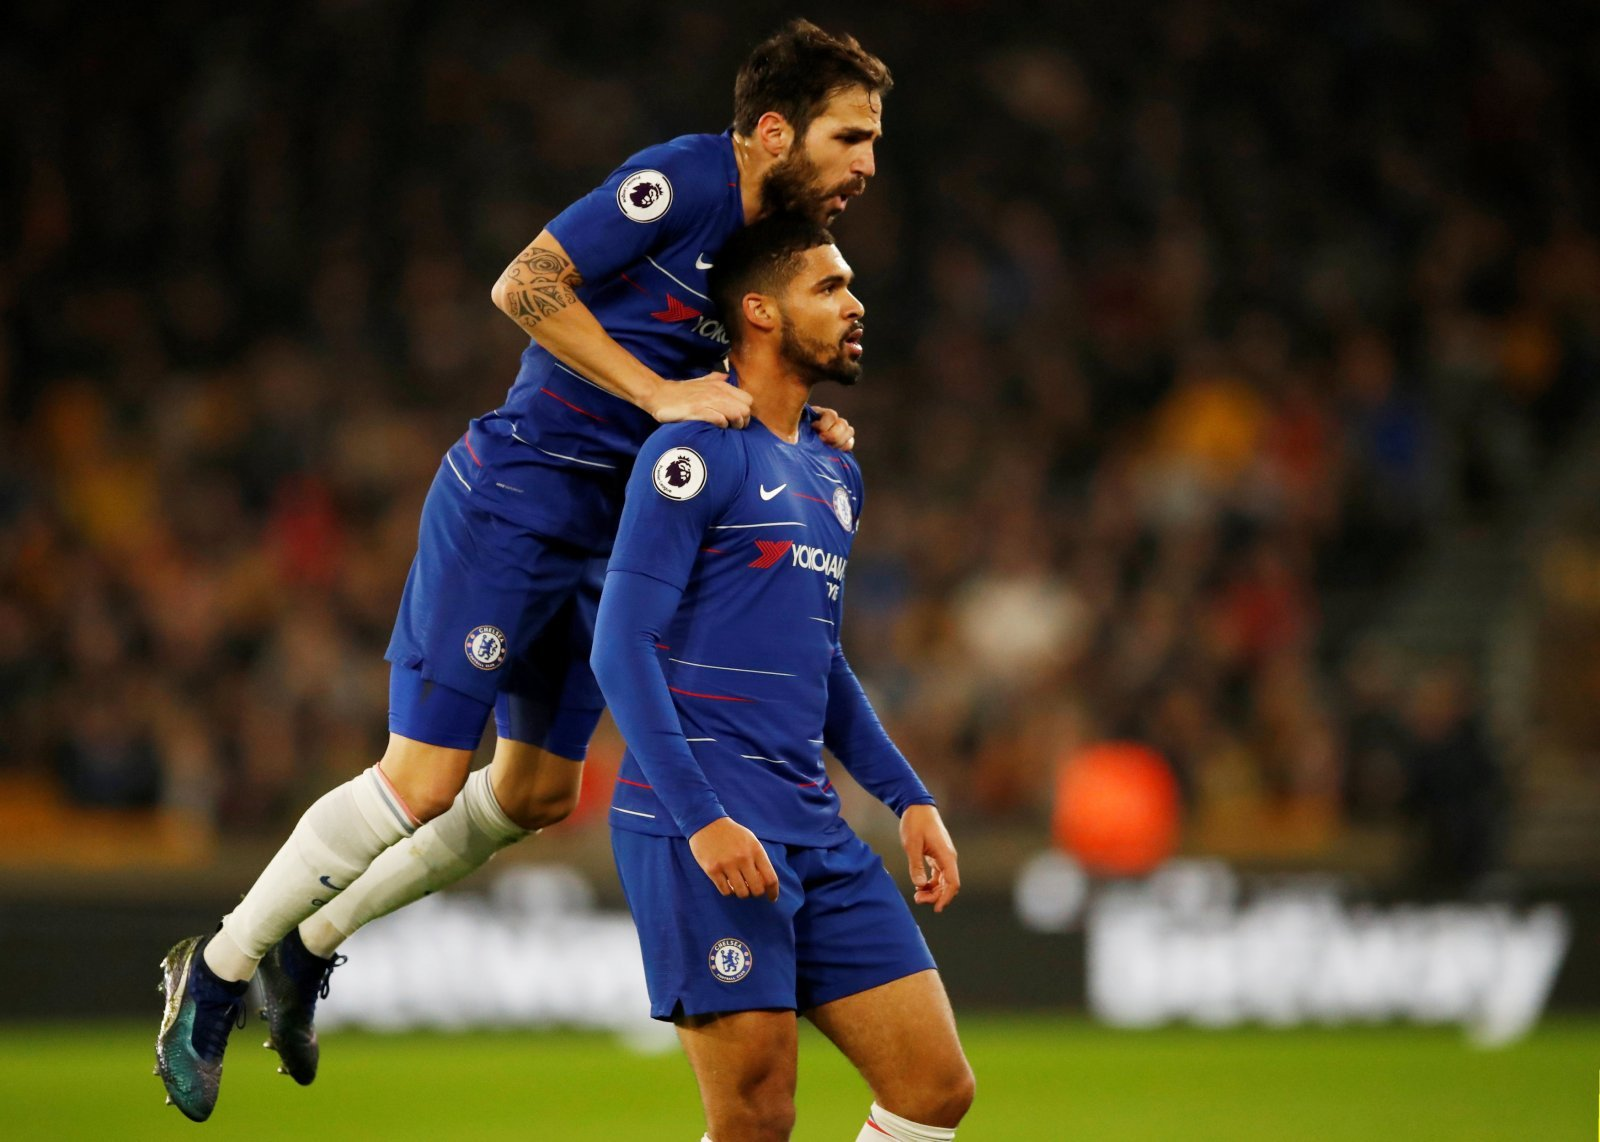 Opinion: Ruben Loftus-Cheek could take Felipe Anderson up another level